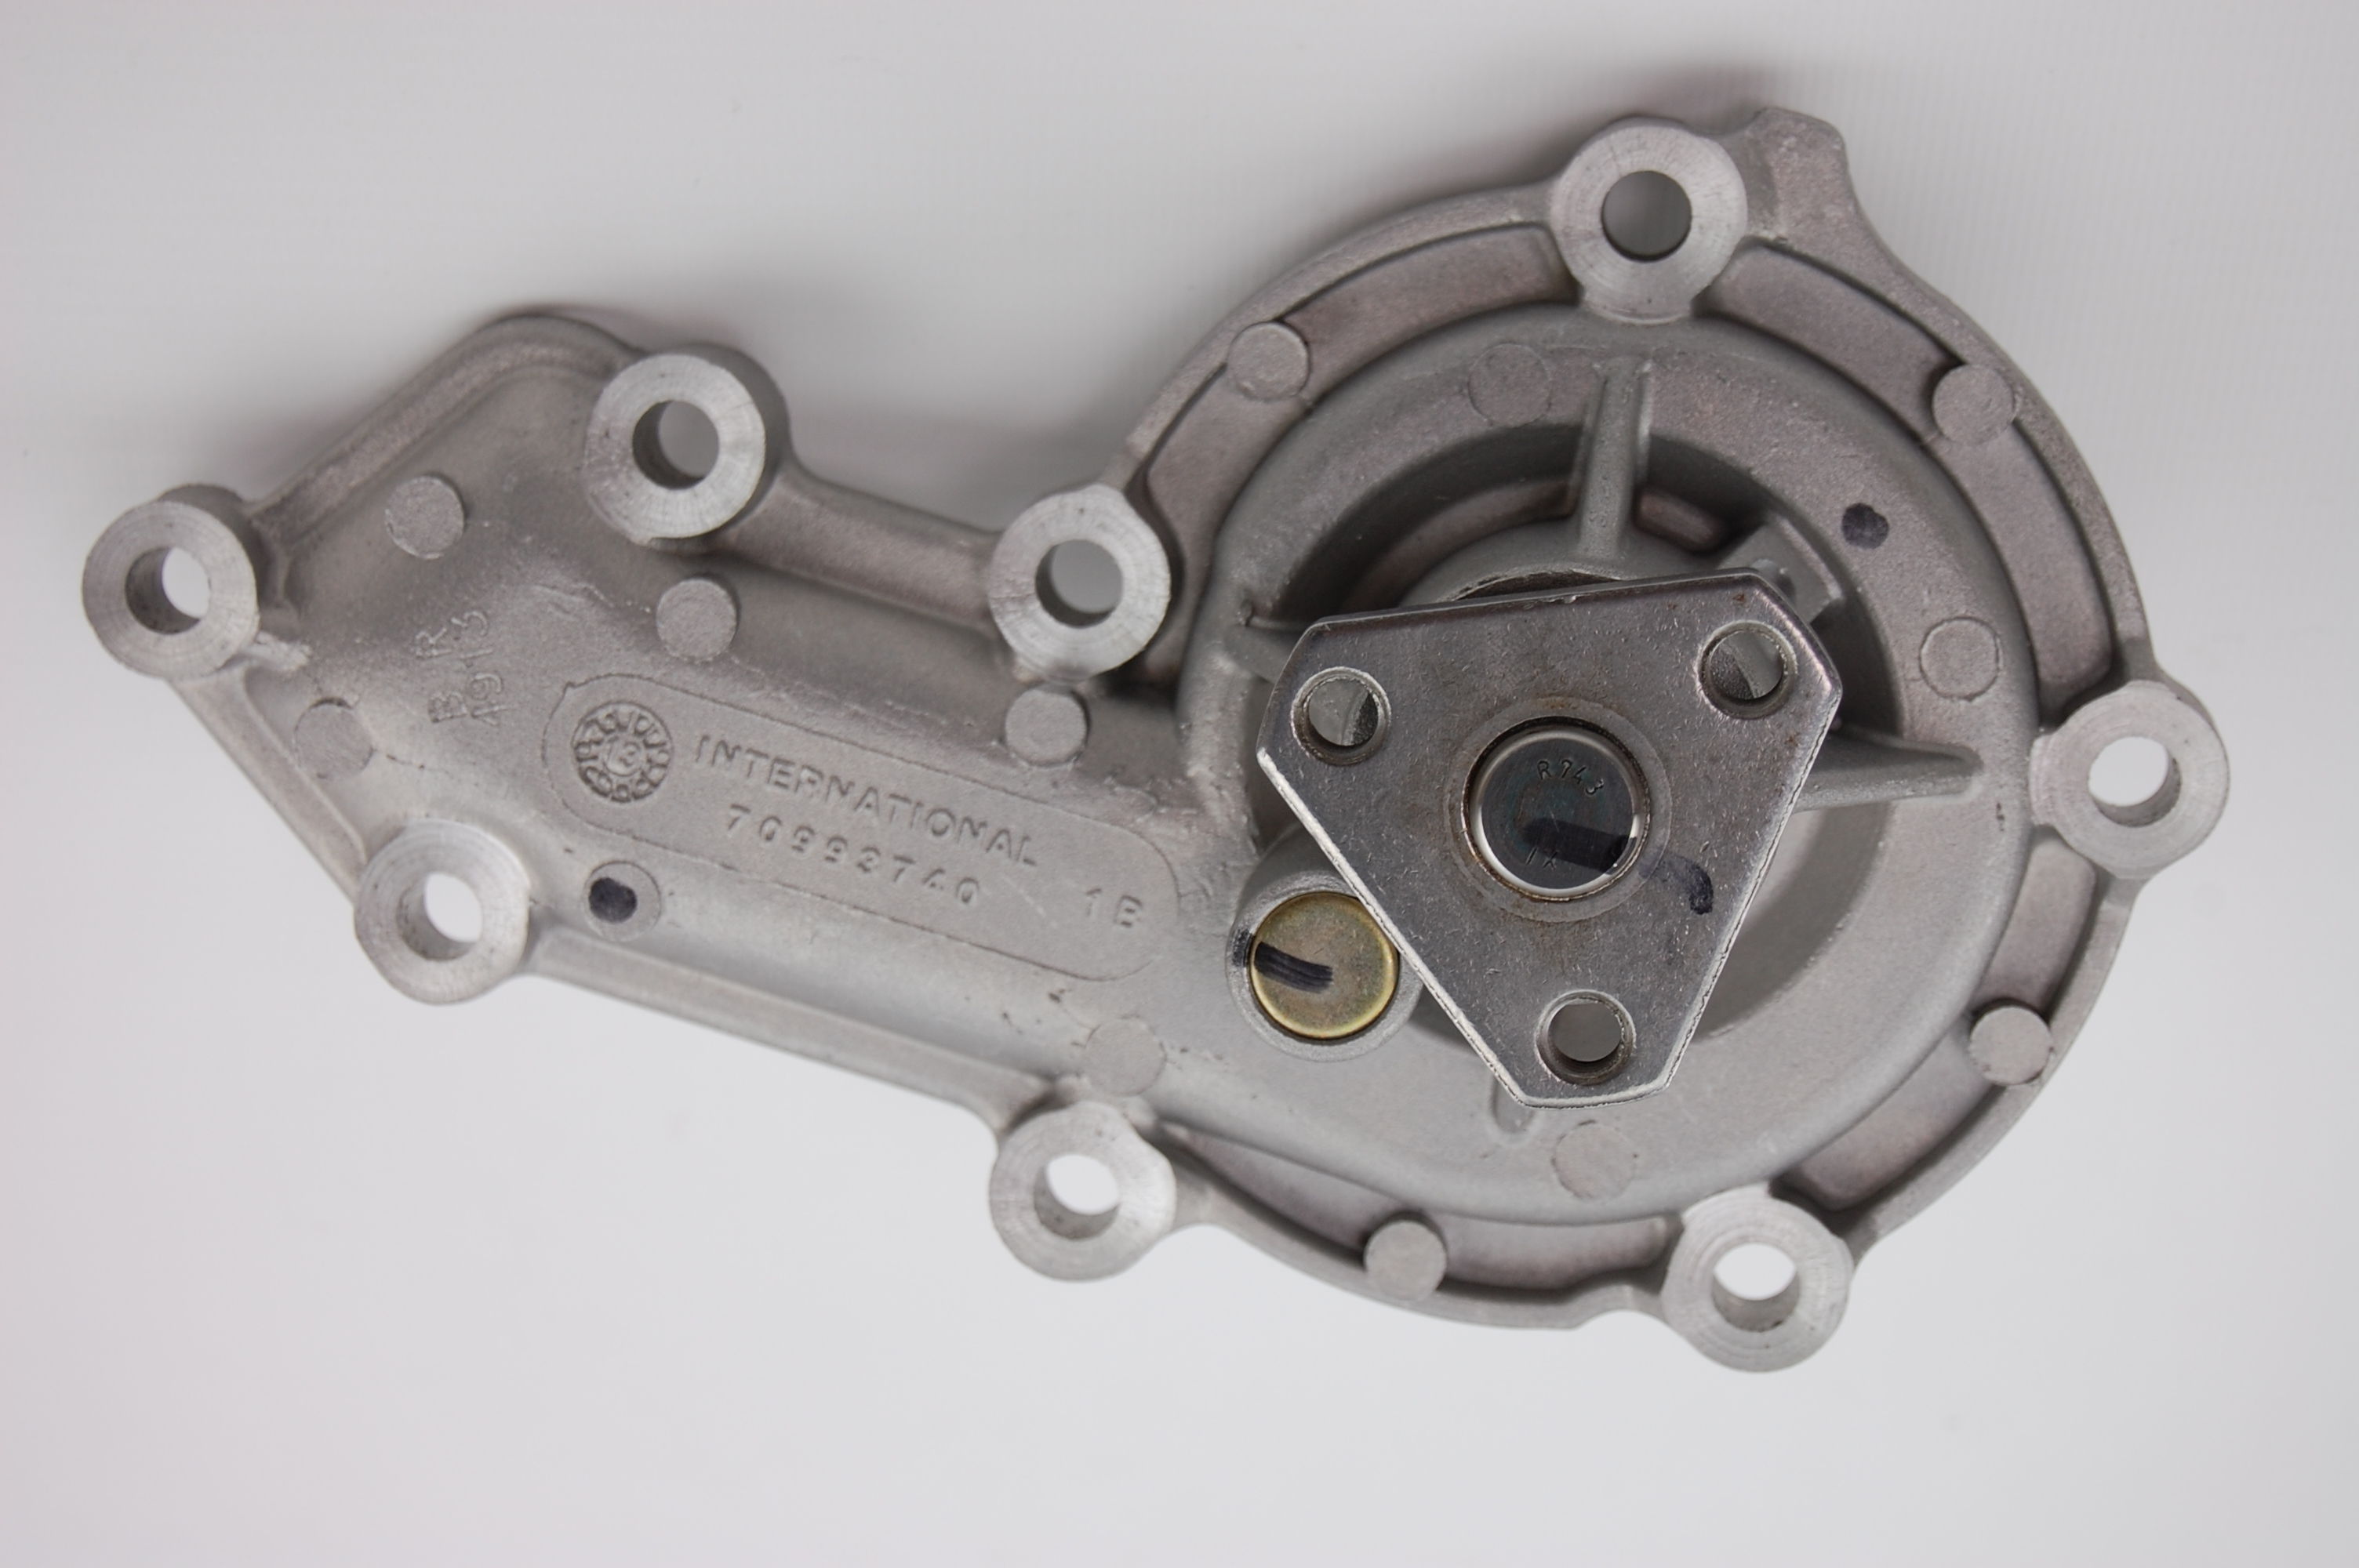 STC1086 and PEB500090 70993740 WATER PUMP tor HS2.8 and 300Tdi engines